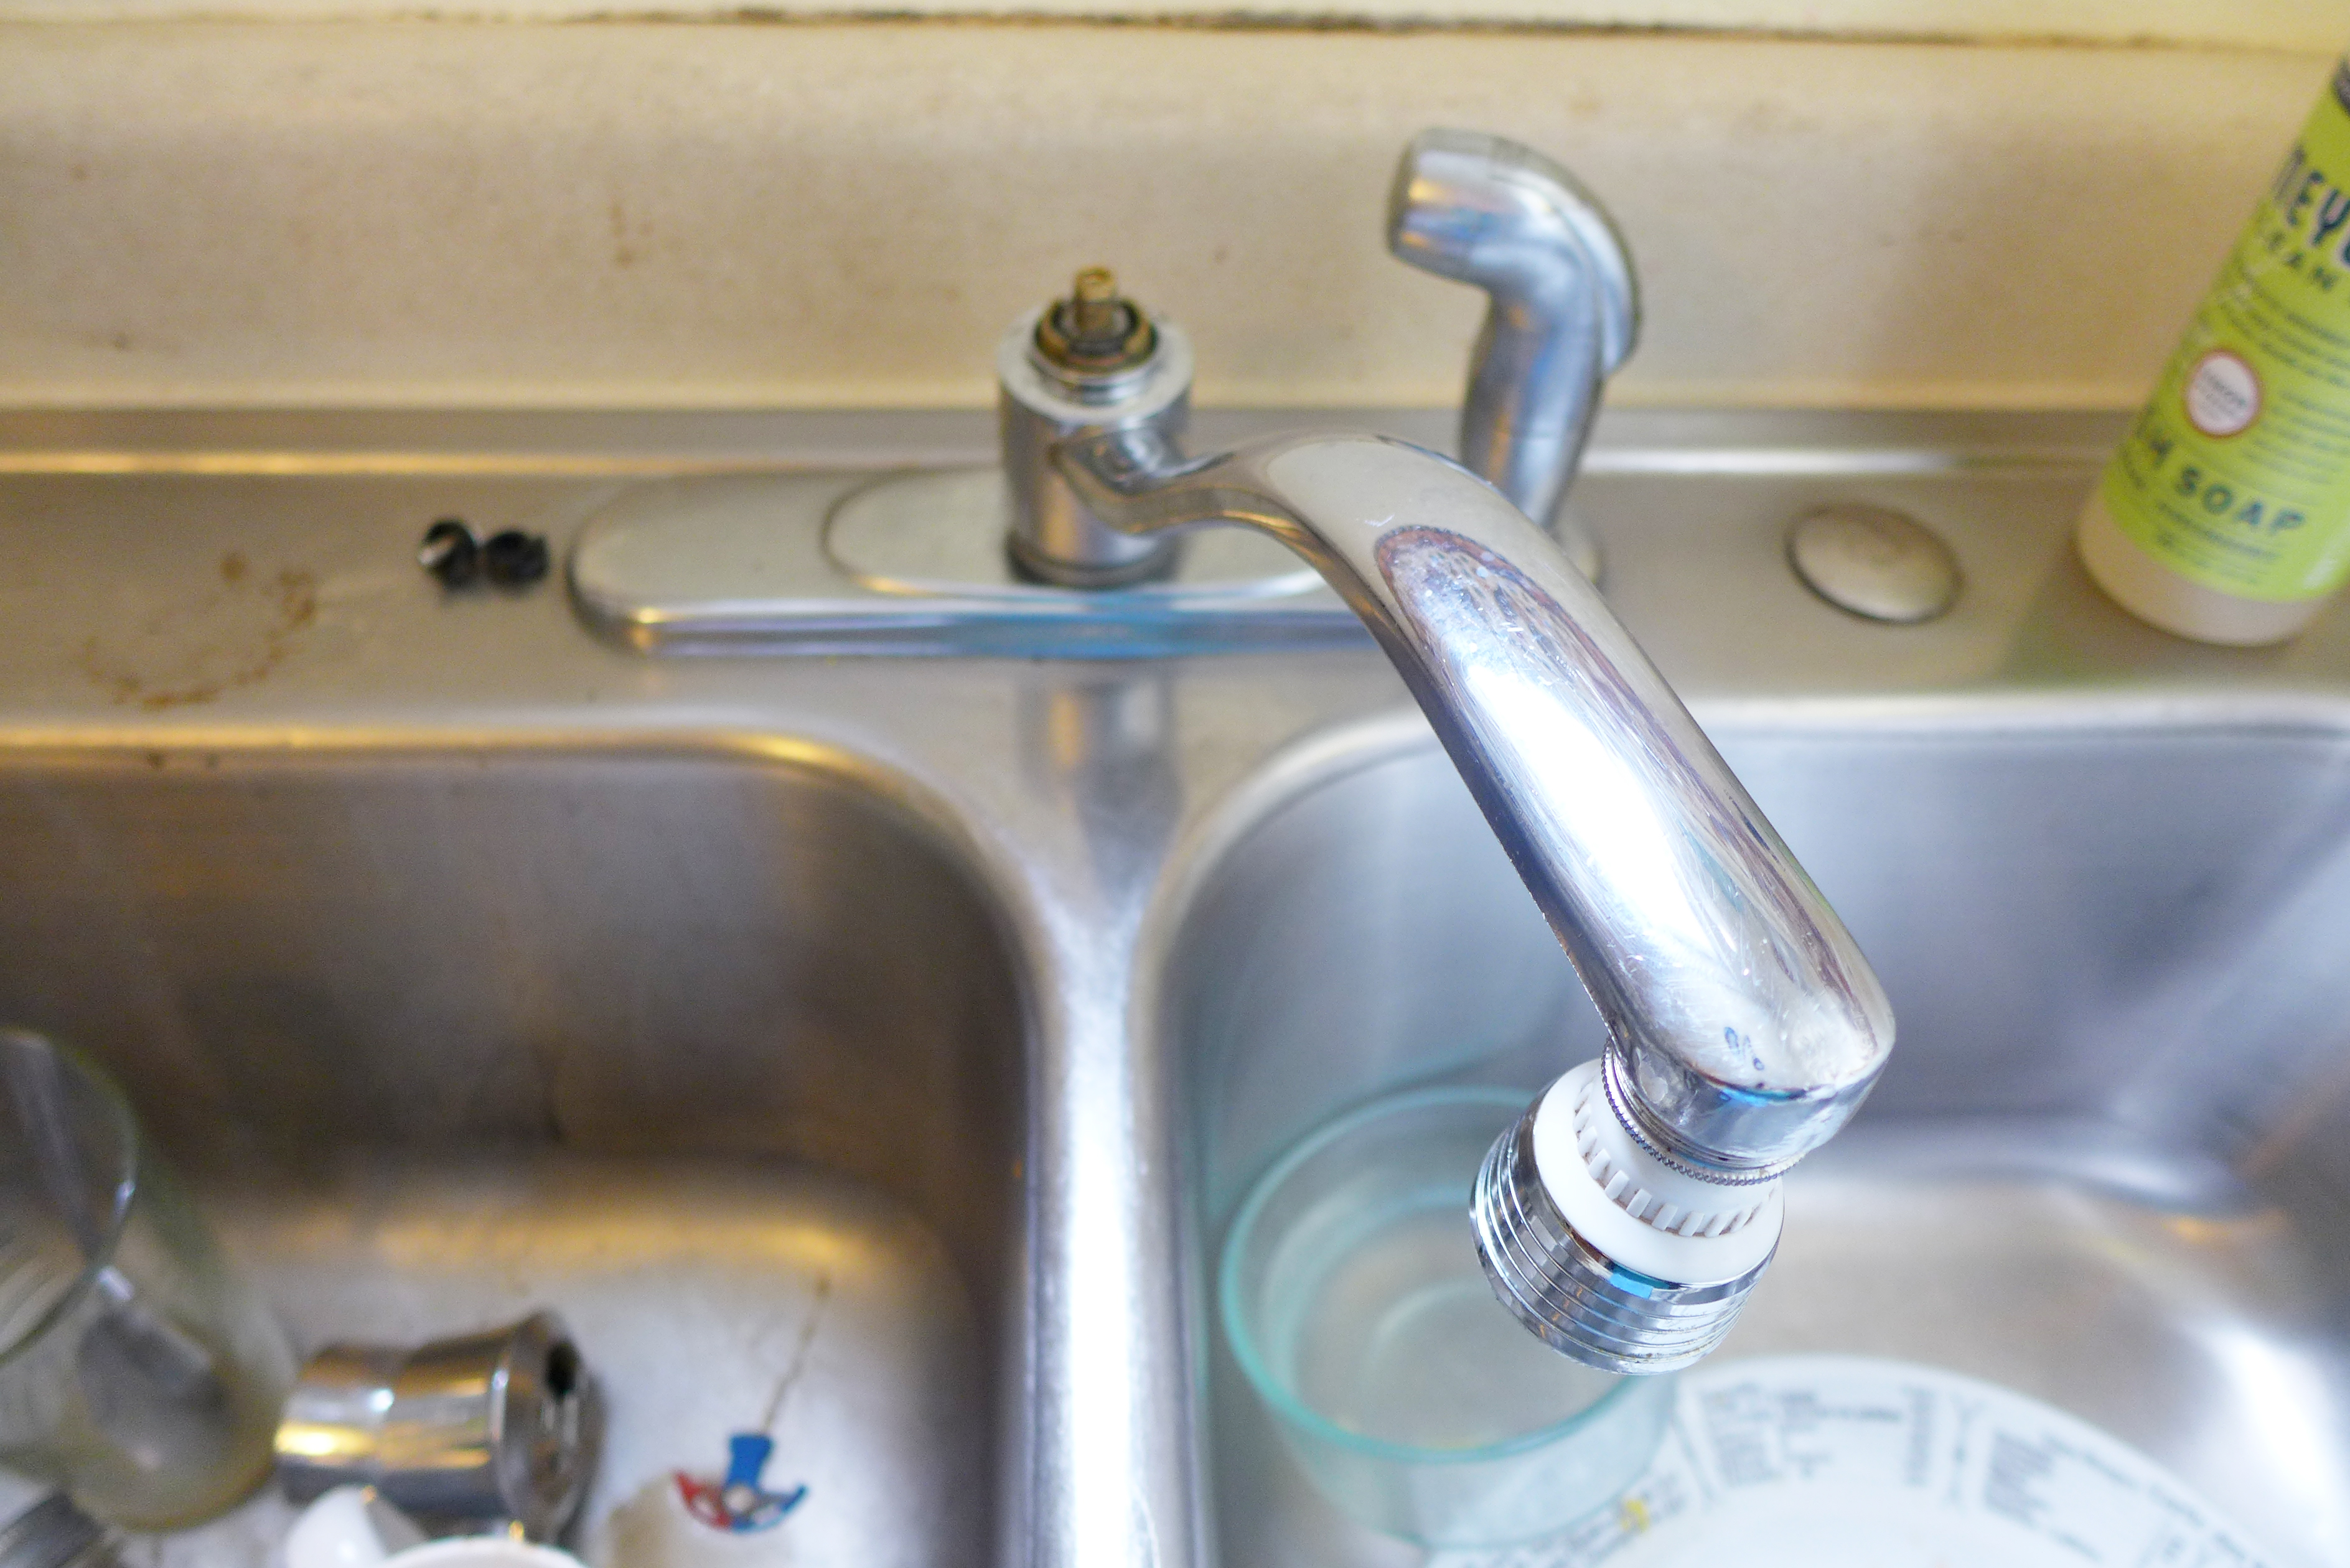 Kitchen Sink Stitch And Boots